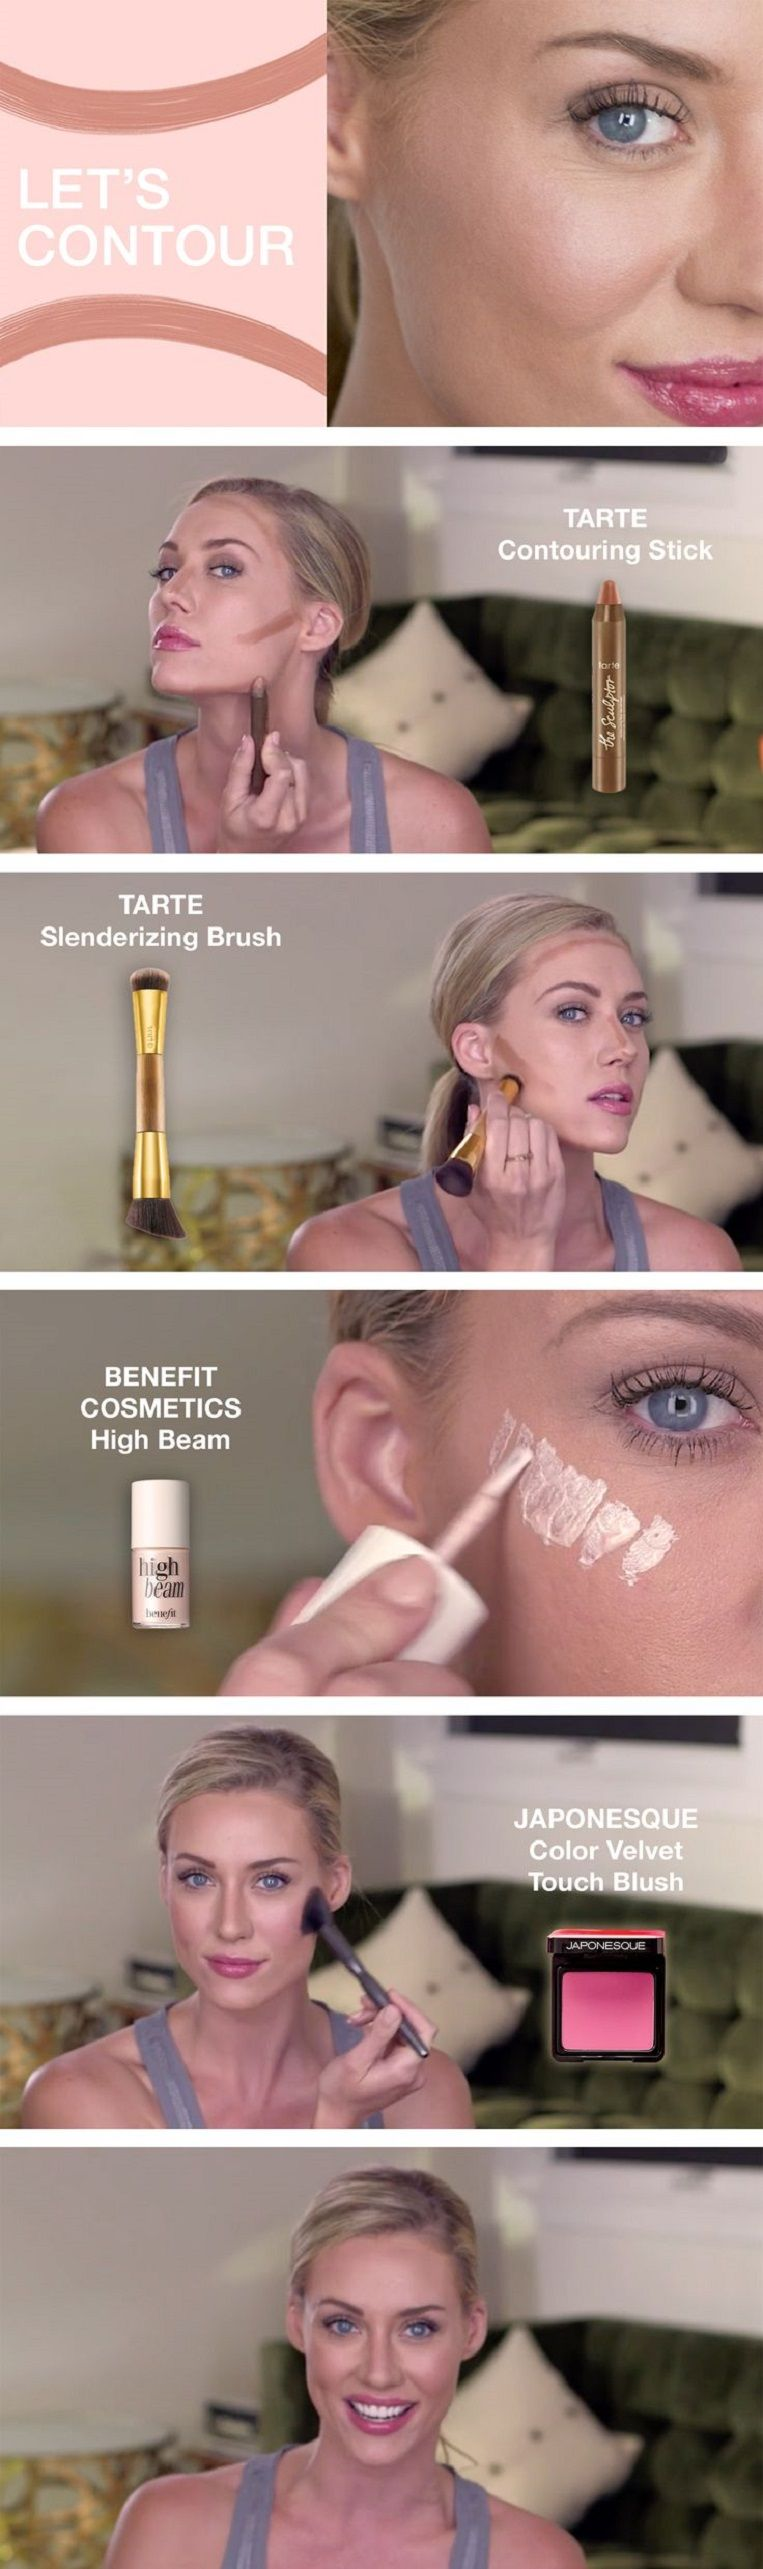 Natural Everyday Look, Using Contouring and Highlighting Techniques - 15 Best Beauty Tutorials for Winter 2014-2015 | GleamItUp